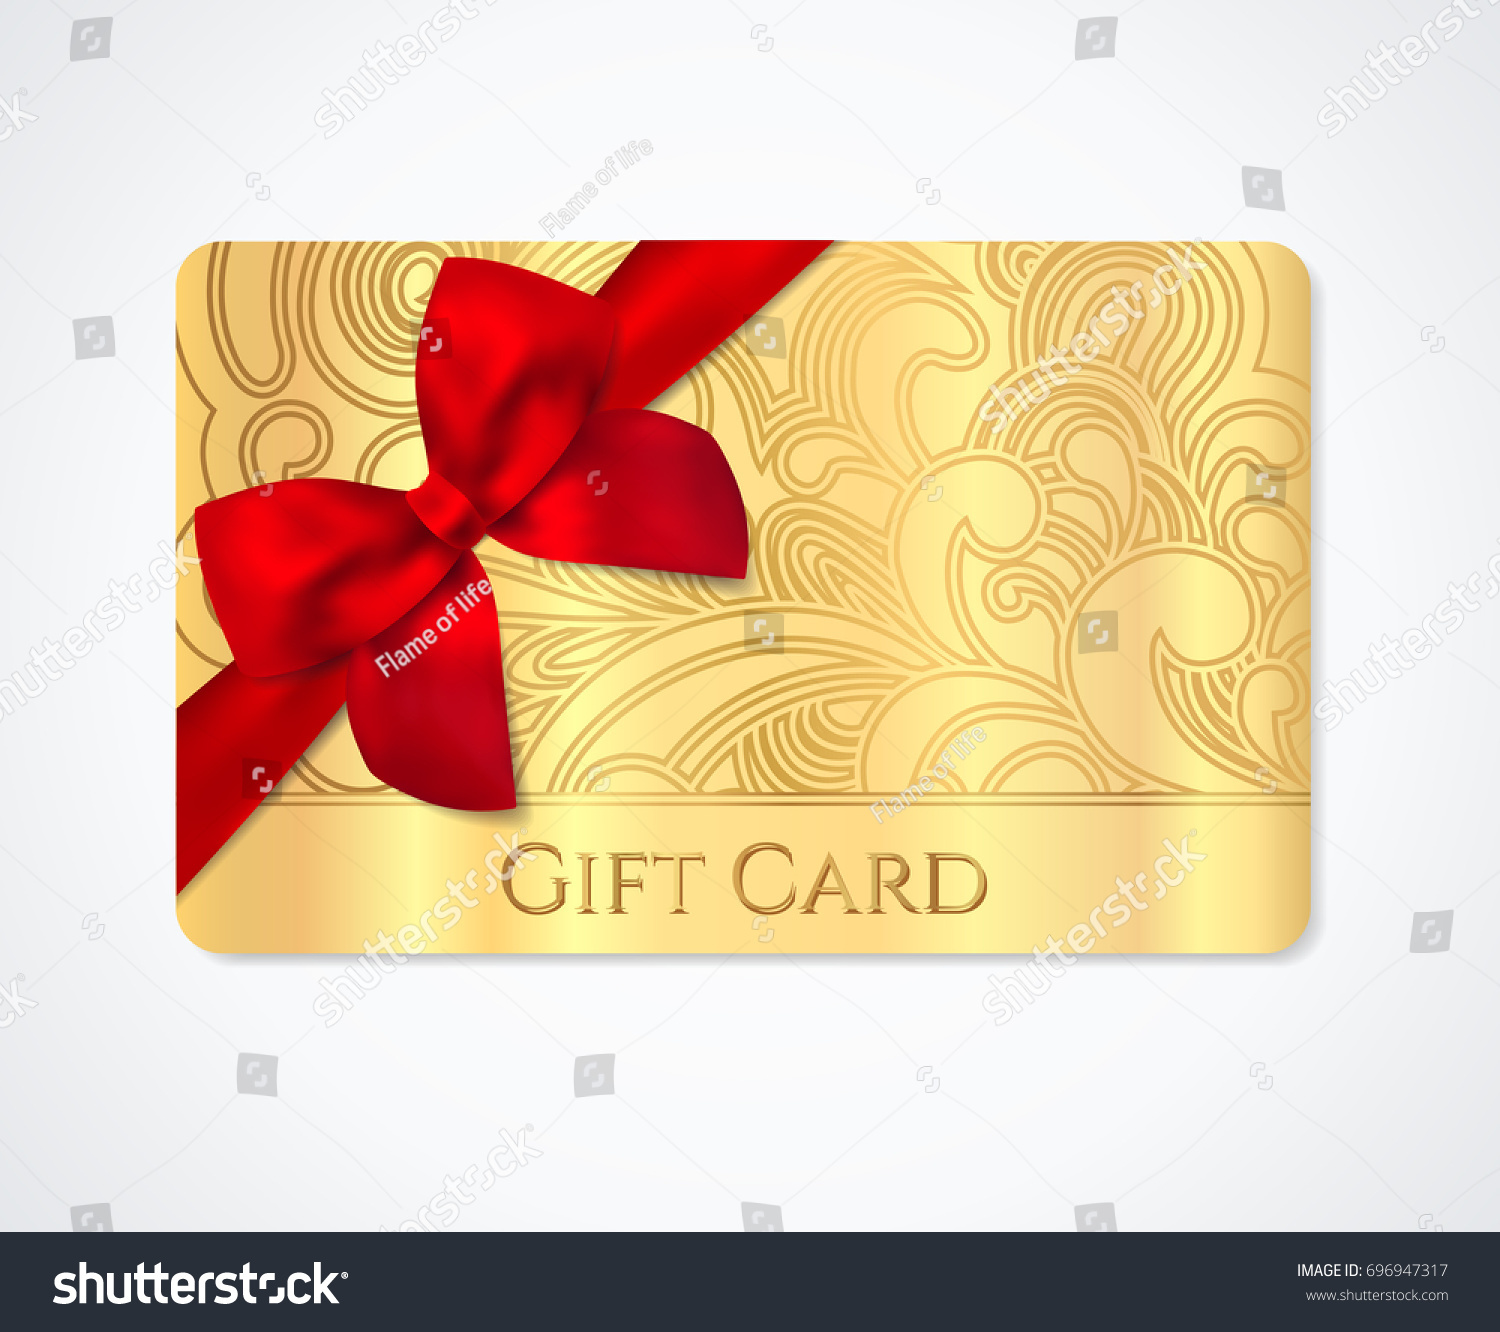 Gift Coupon Gift Card Discount Business Stock Vector